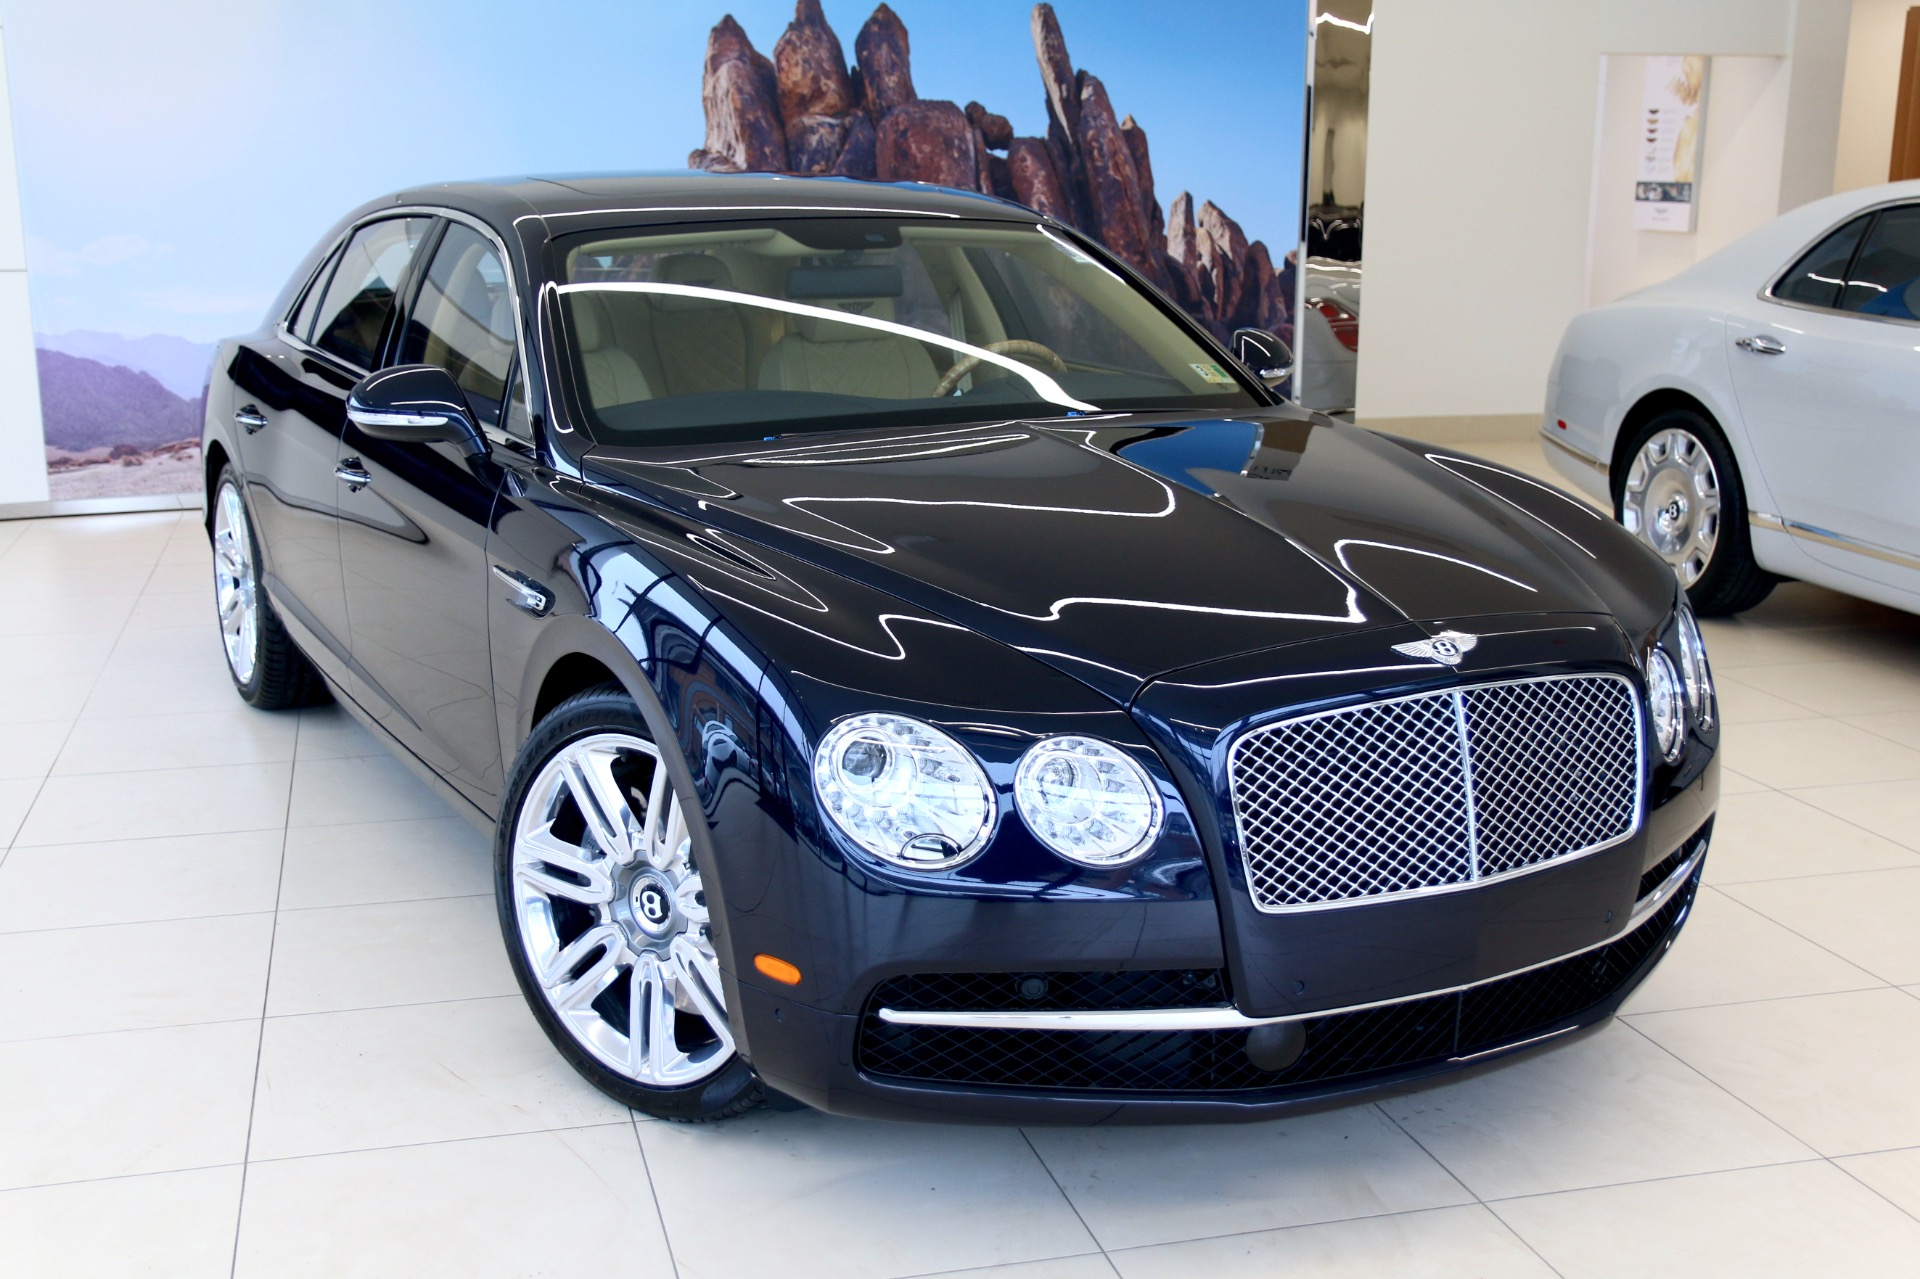 2018 Bentley Flying Spur W12 Stock 8n067752 For Sale Near Vienna Va Va Bentley Dealer For Sale In Vienna Va 8n067752 Exclusive Automotive Group